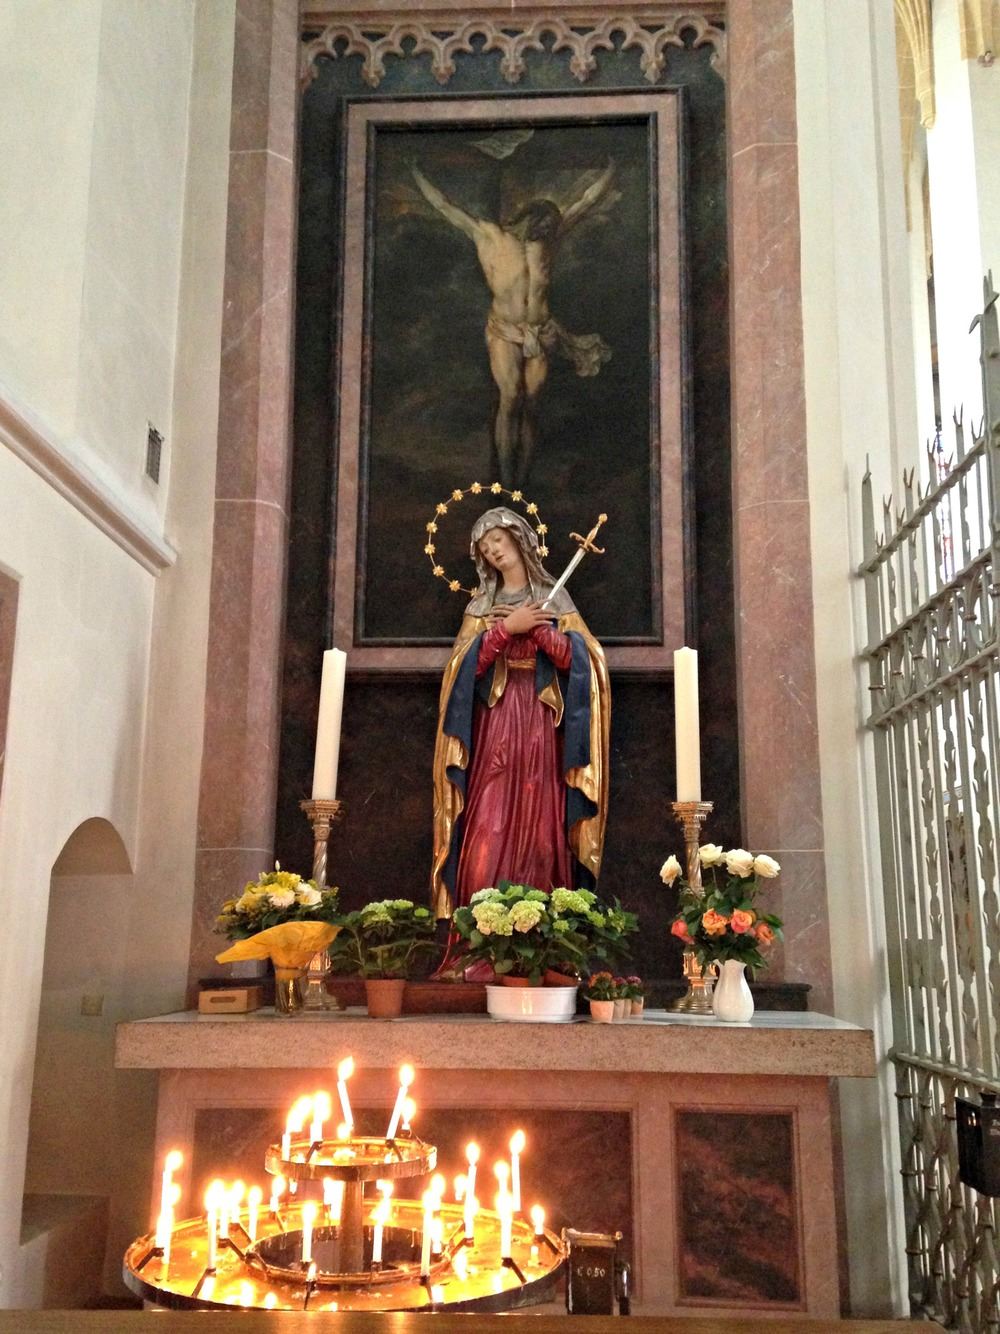 Inside Frauenkirche (Cathedral of Our Dear Lady)